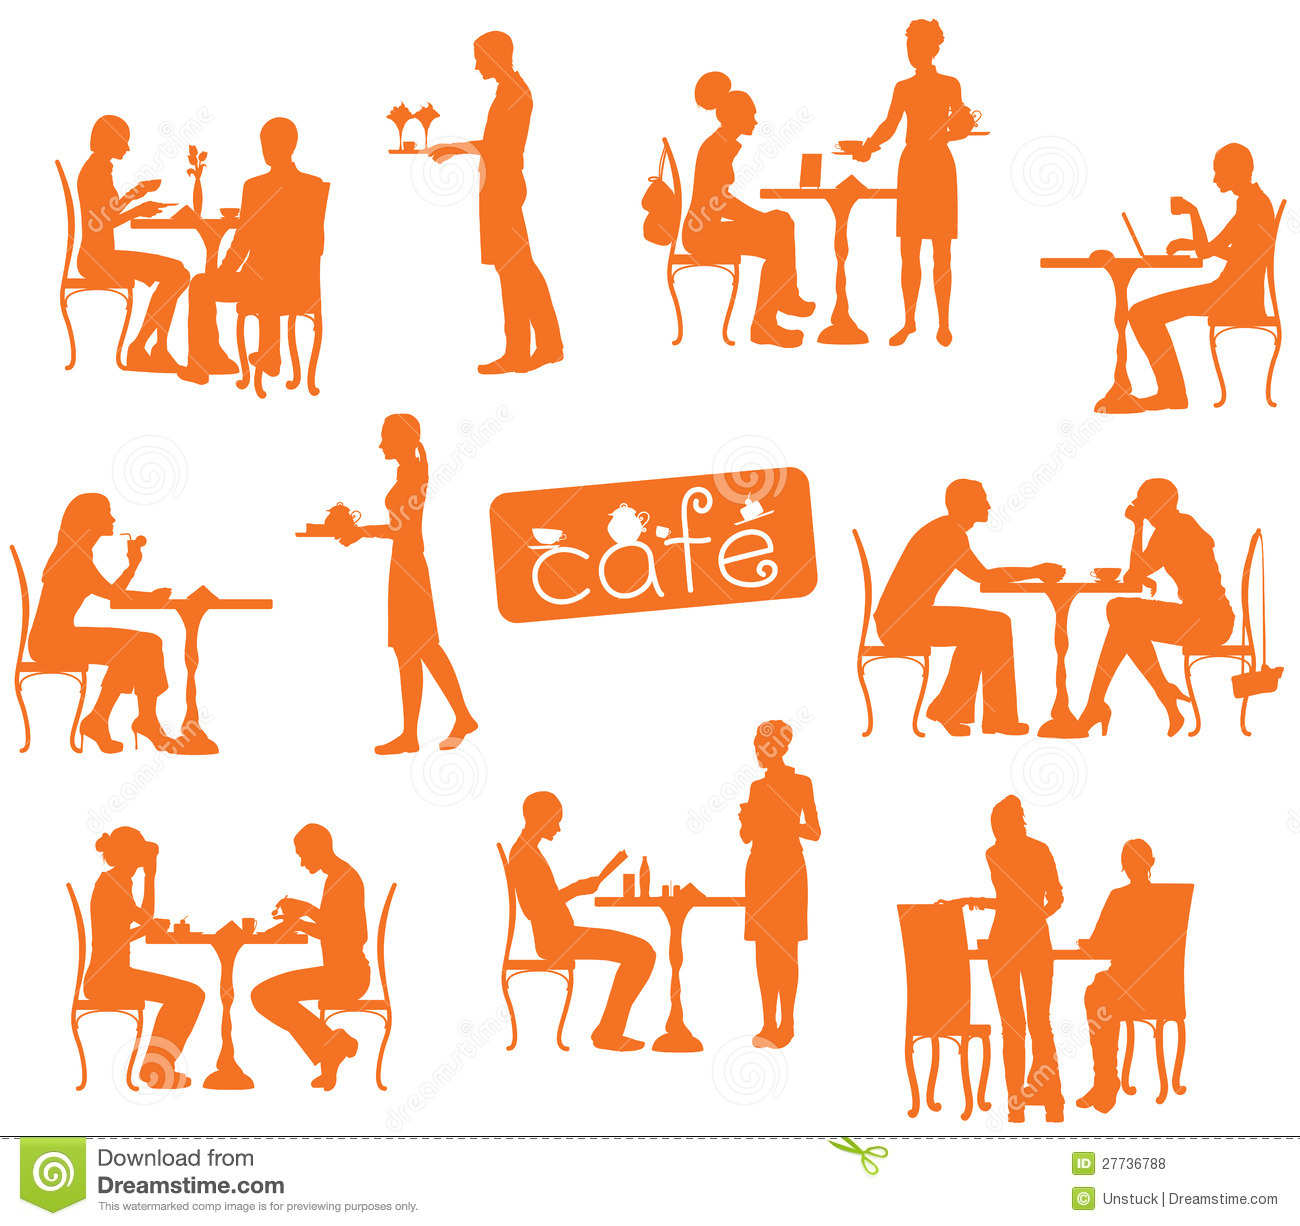 Silhouette of People Sitting in Cafe